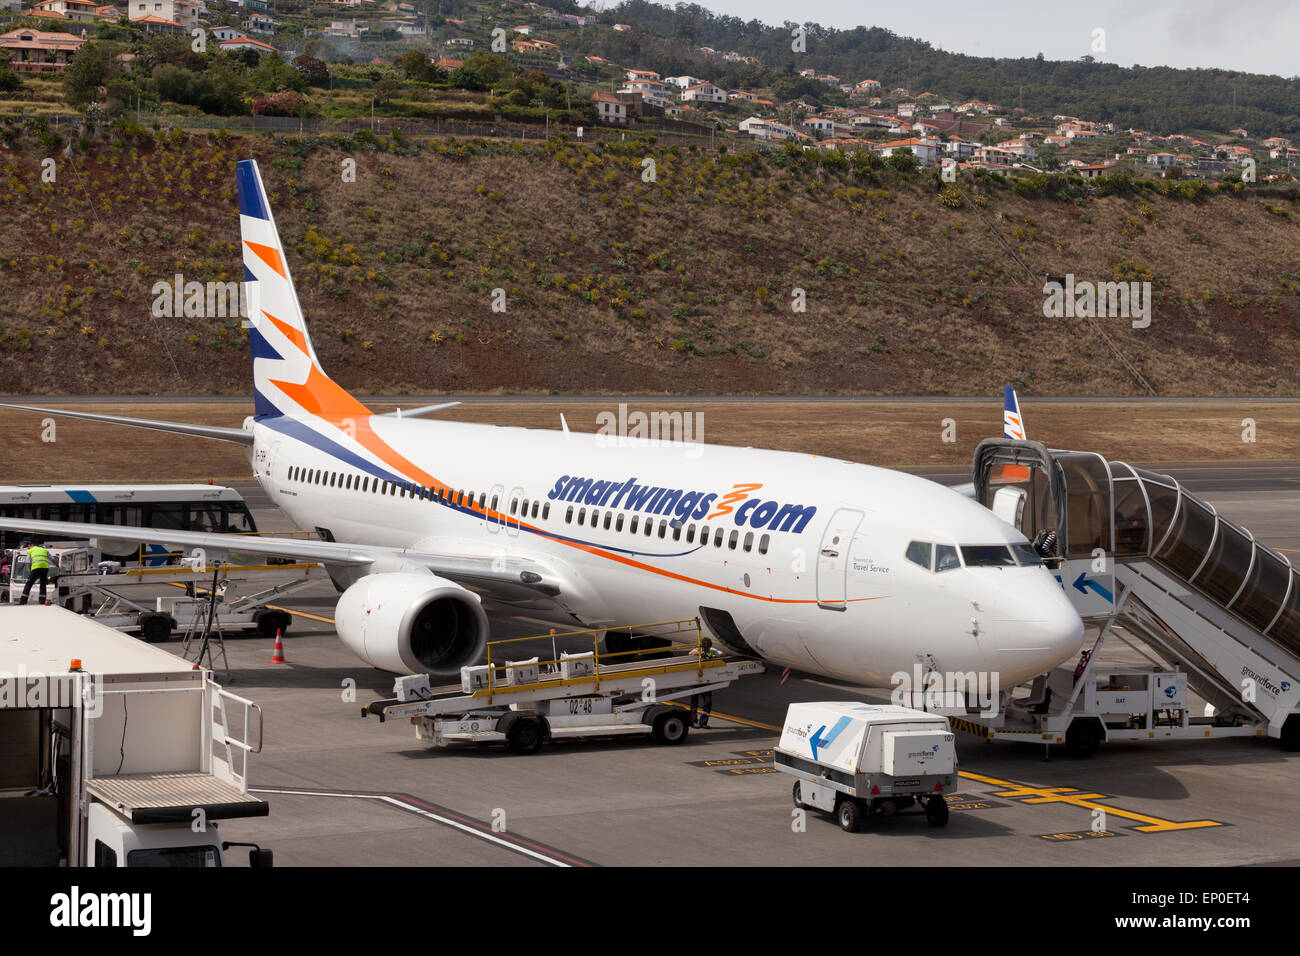 A Smartwings Boeing 737-800 plane at the gate, Funchal airport, Madeira, Europe - Stock Image